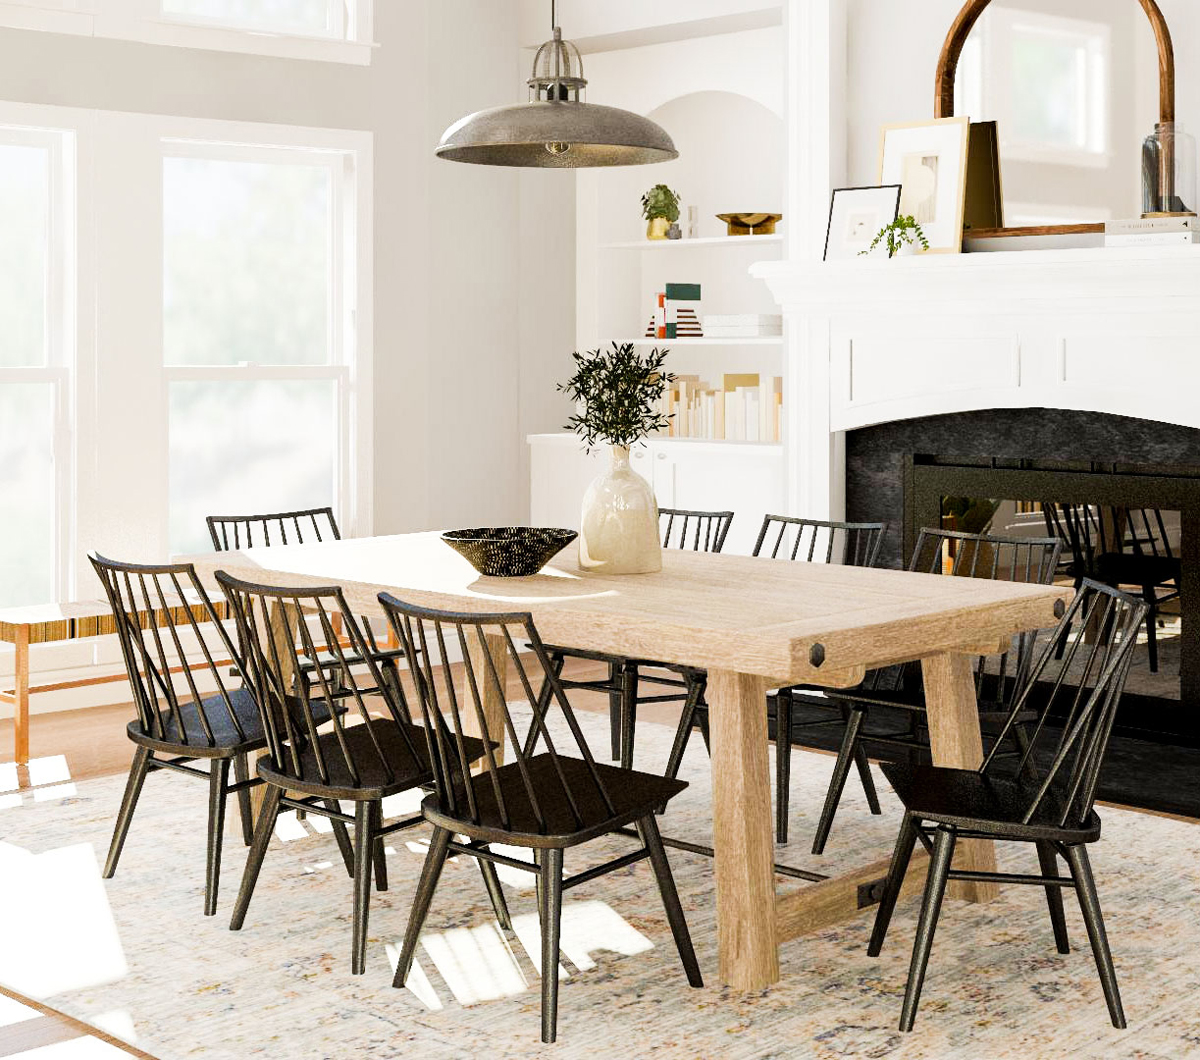 Rustic Family Room Eating Together 5 Design Tips For A Family Dining Room Modsy Blog